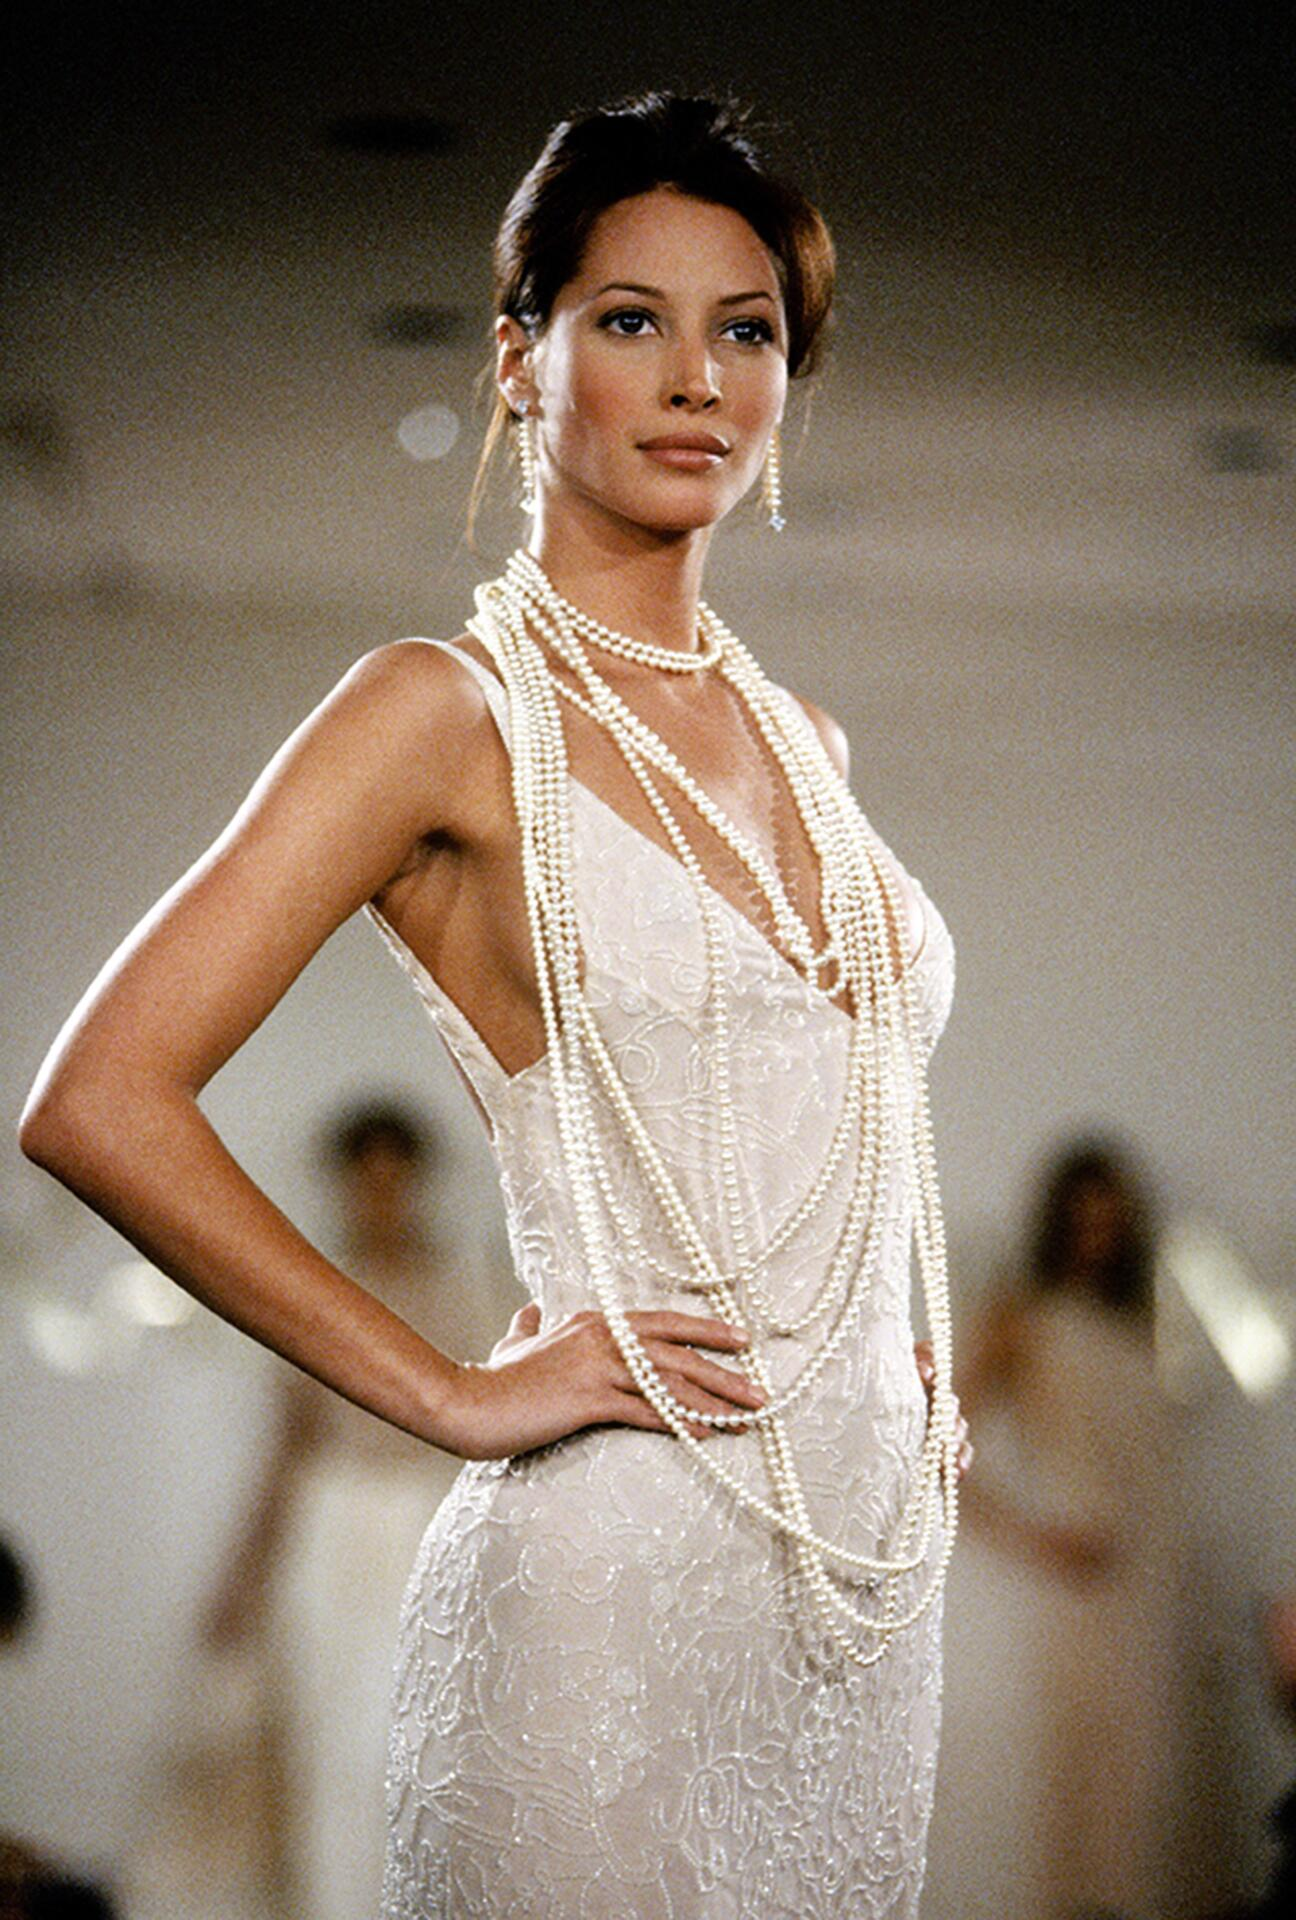 Bild zu Christy Turlington, Model, 90er